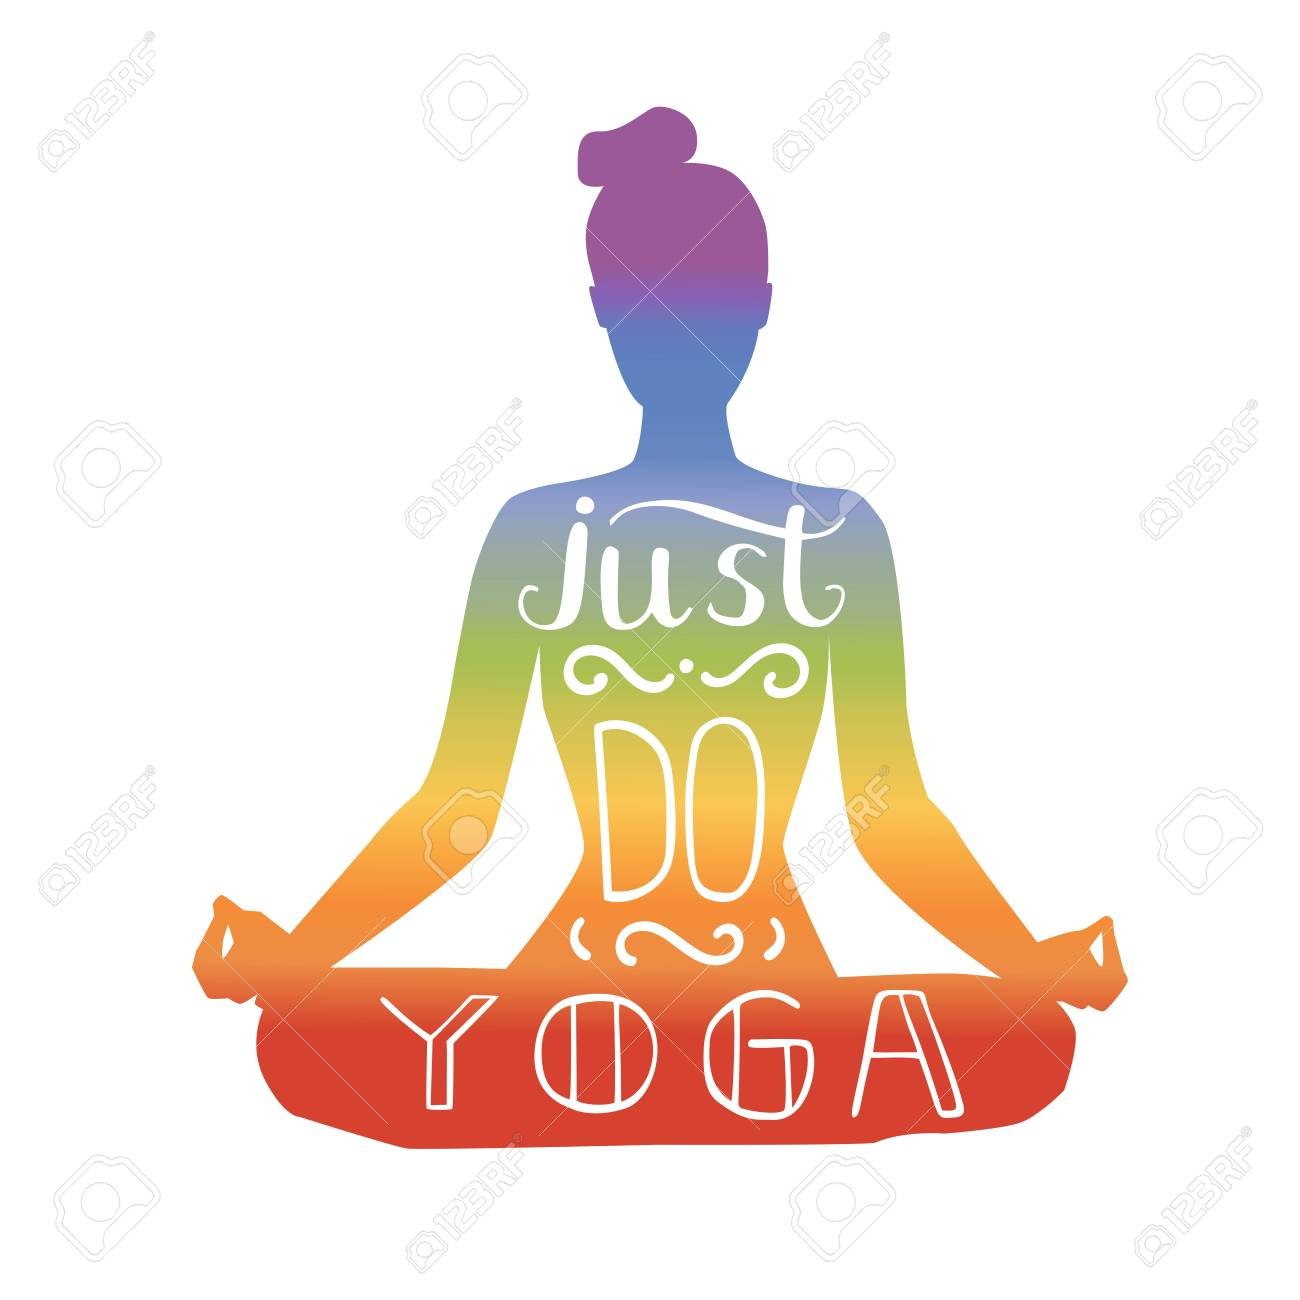 just do yoga vector illustration with hand lettering silhouette rh 123rf com yoga vector silhouette yoga vector graphic